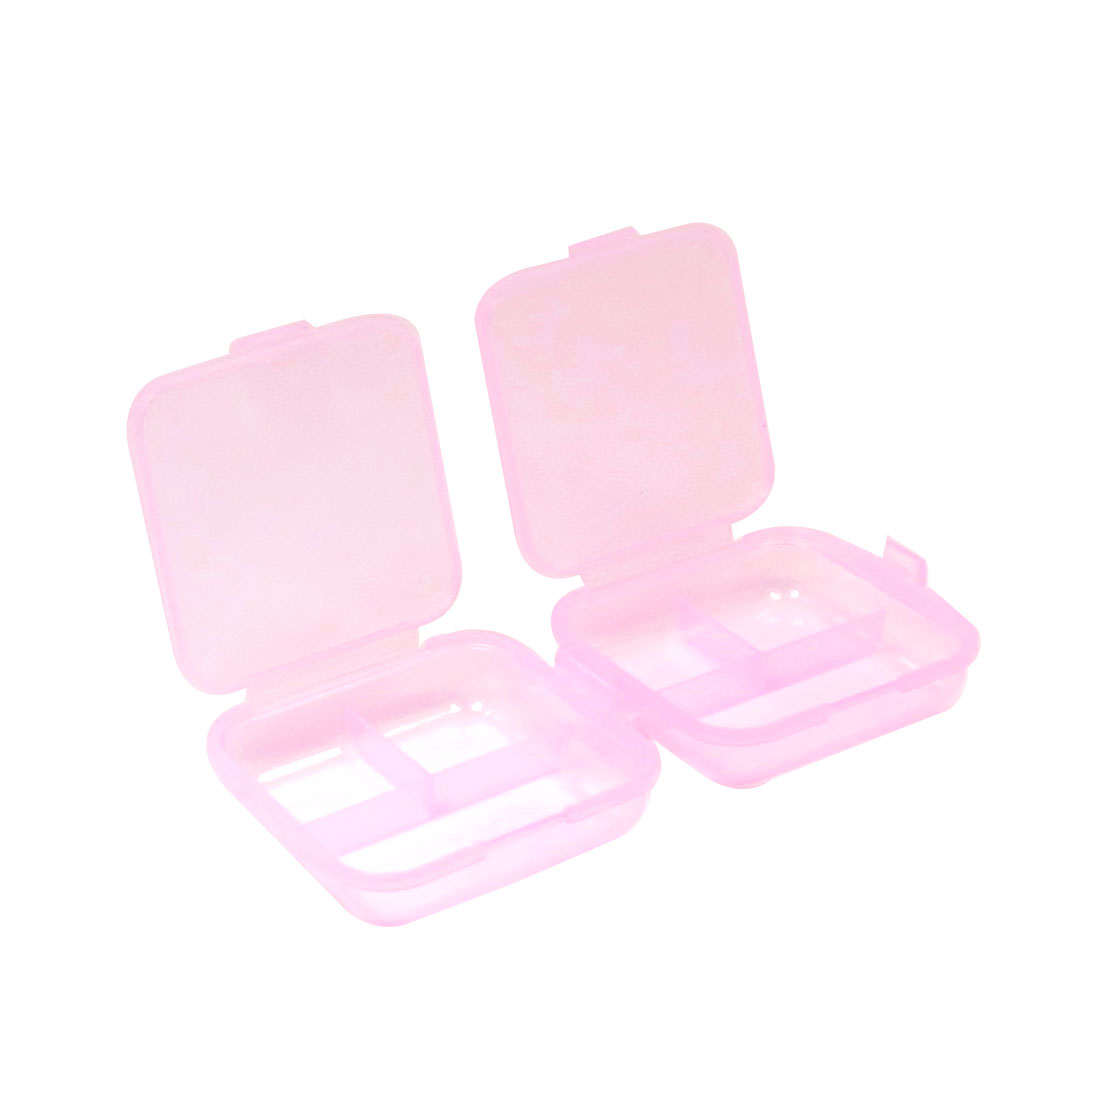 Travel Portable 6 Rooms Mini Vitamin Medicine Pill Box Organizer Pink